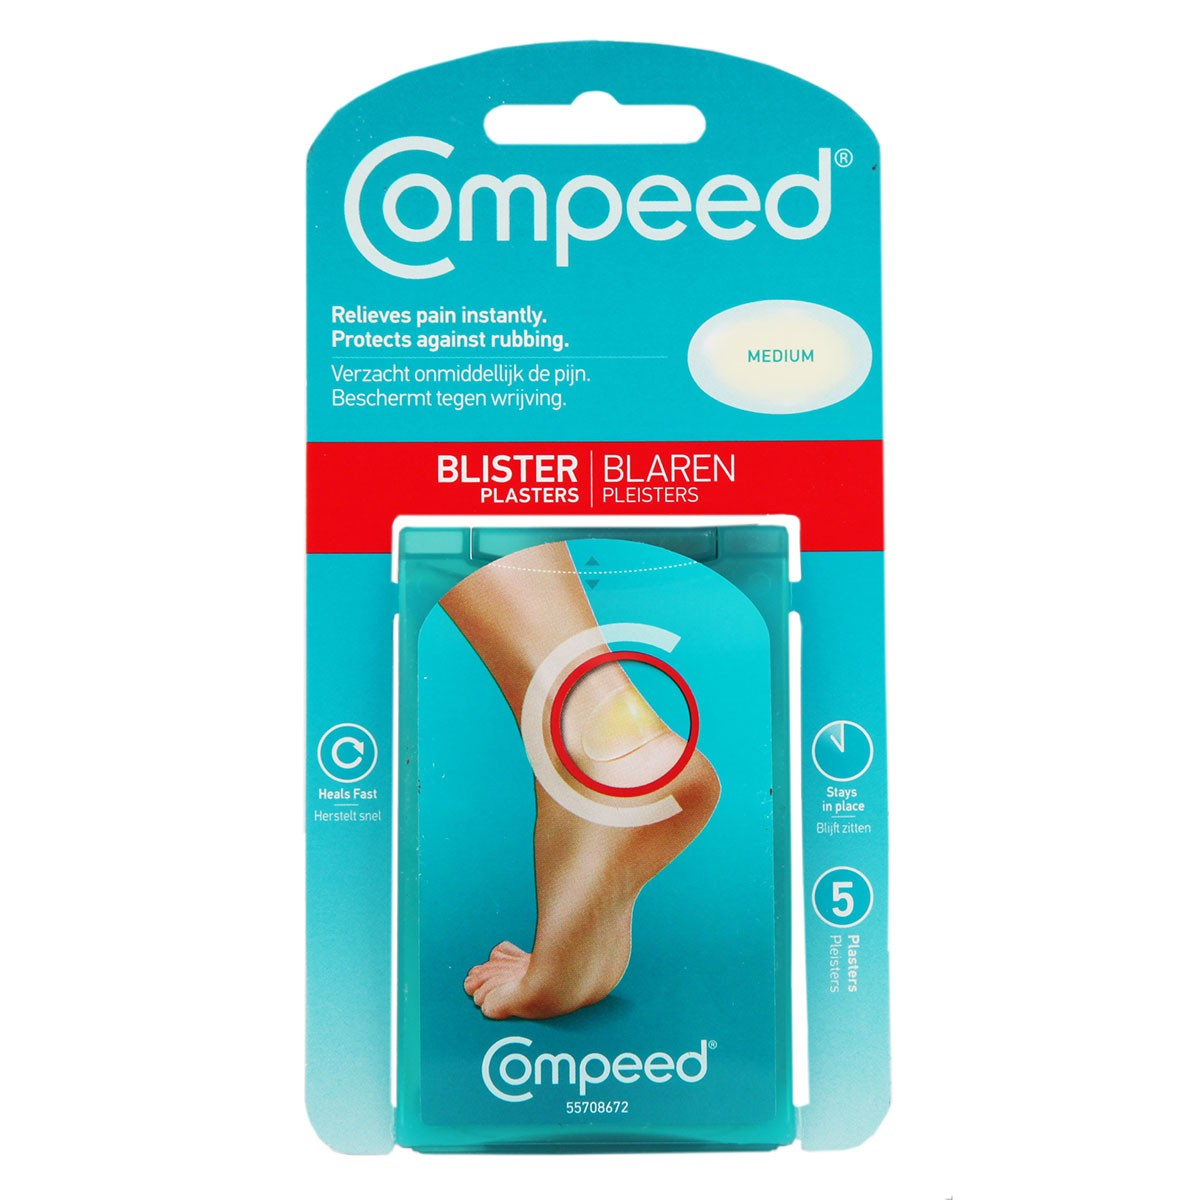 Compeed Blister Plasters – Medium